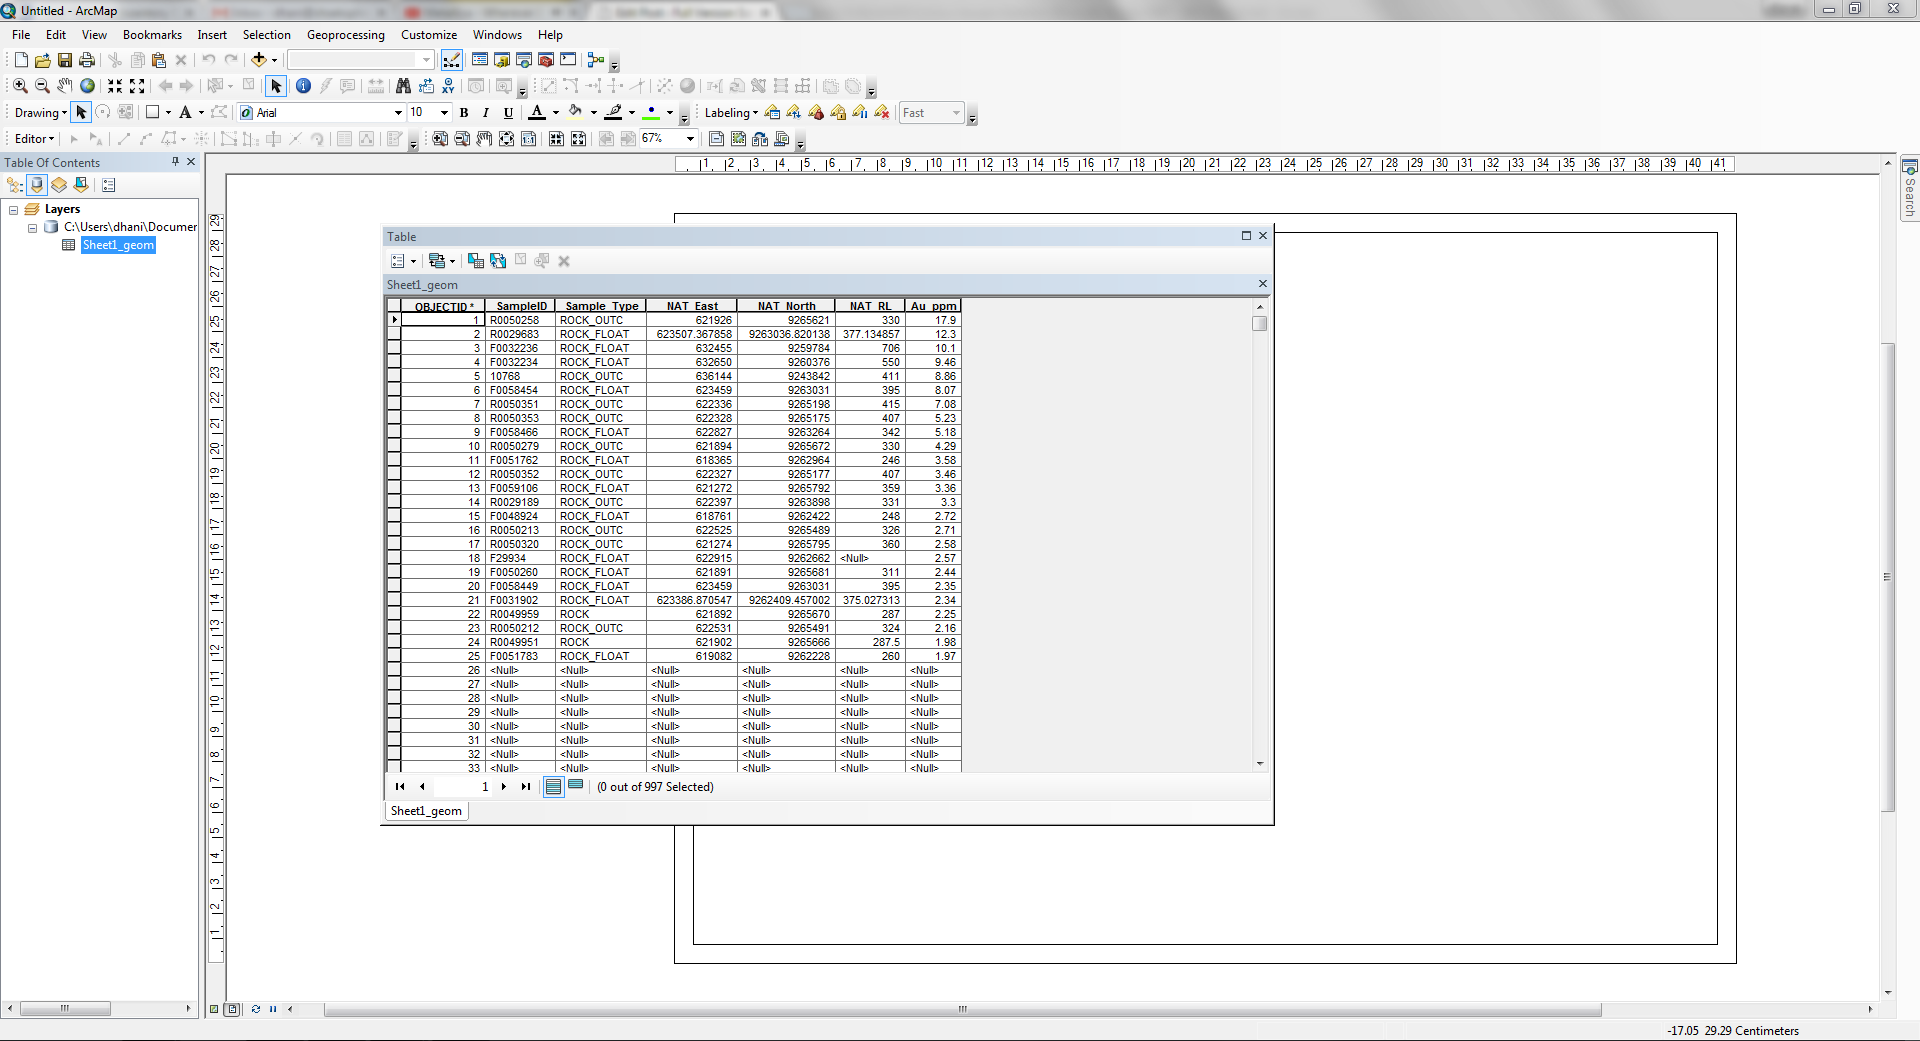 How to import Microsoft Excel data to ArcGIS 10.2